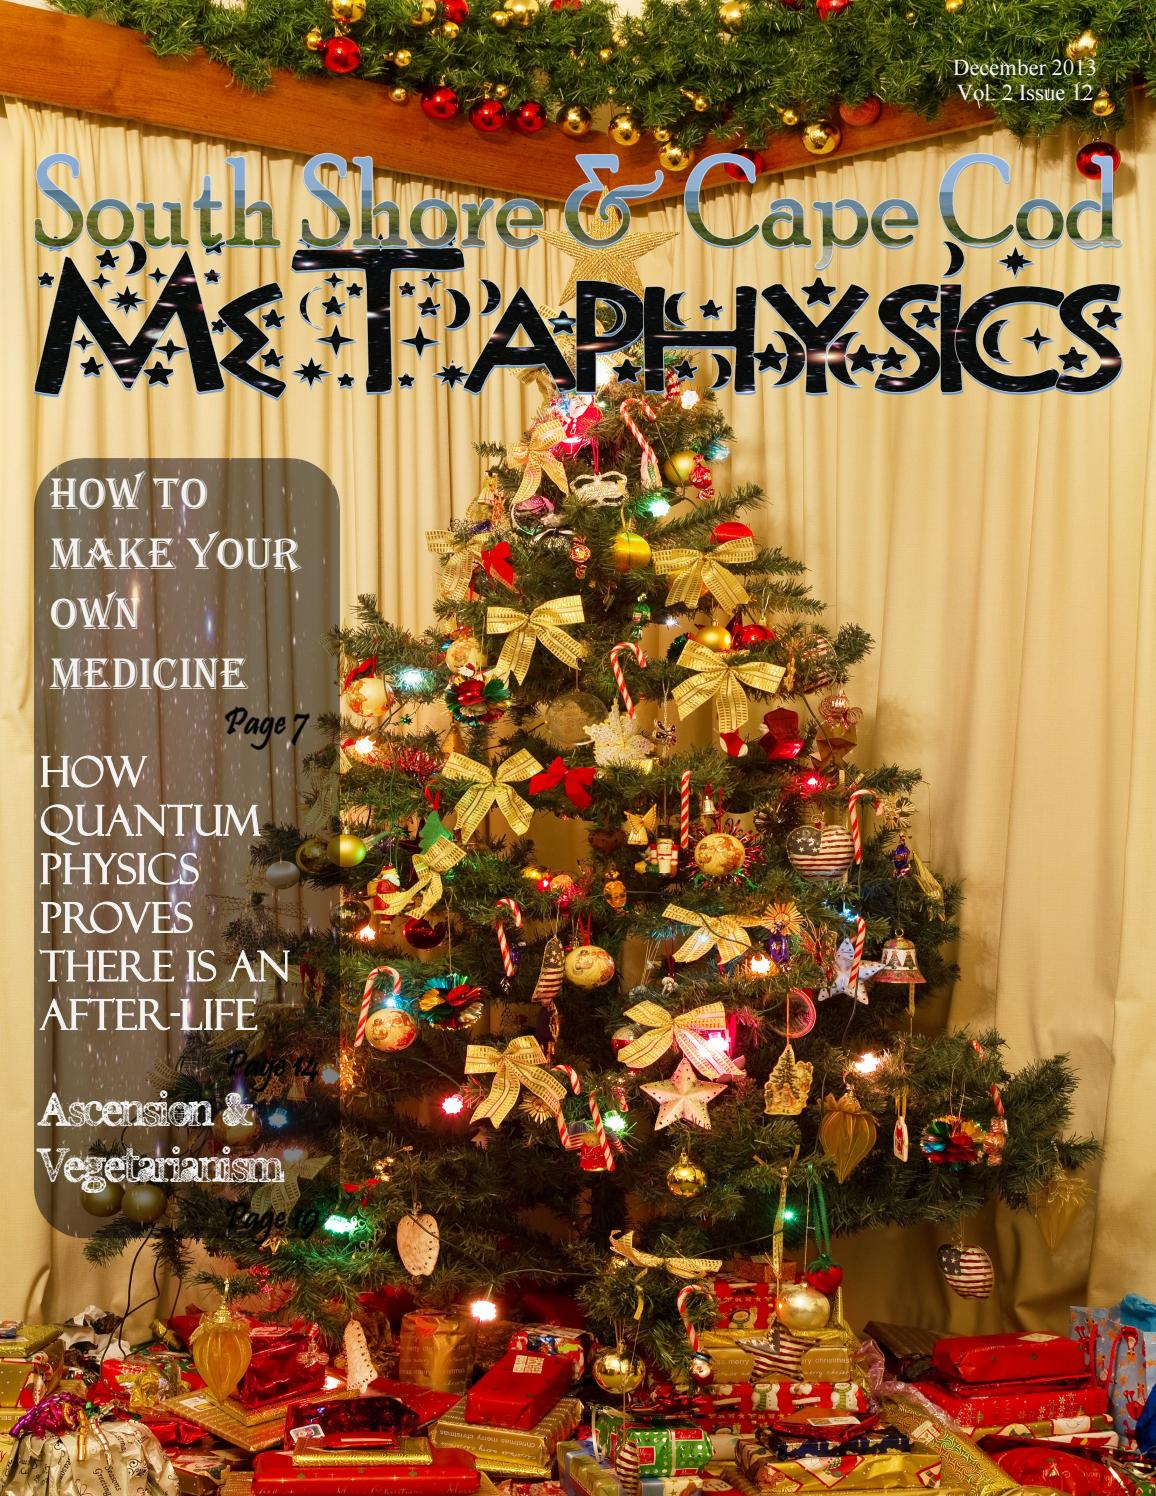 South Shore and Cape Cod Metaphysics December 2013 by South